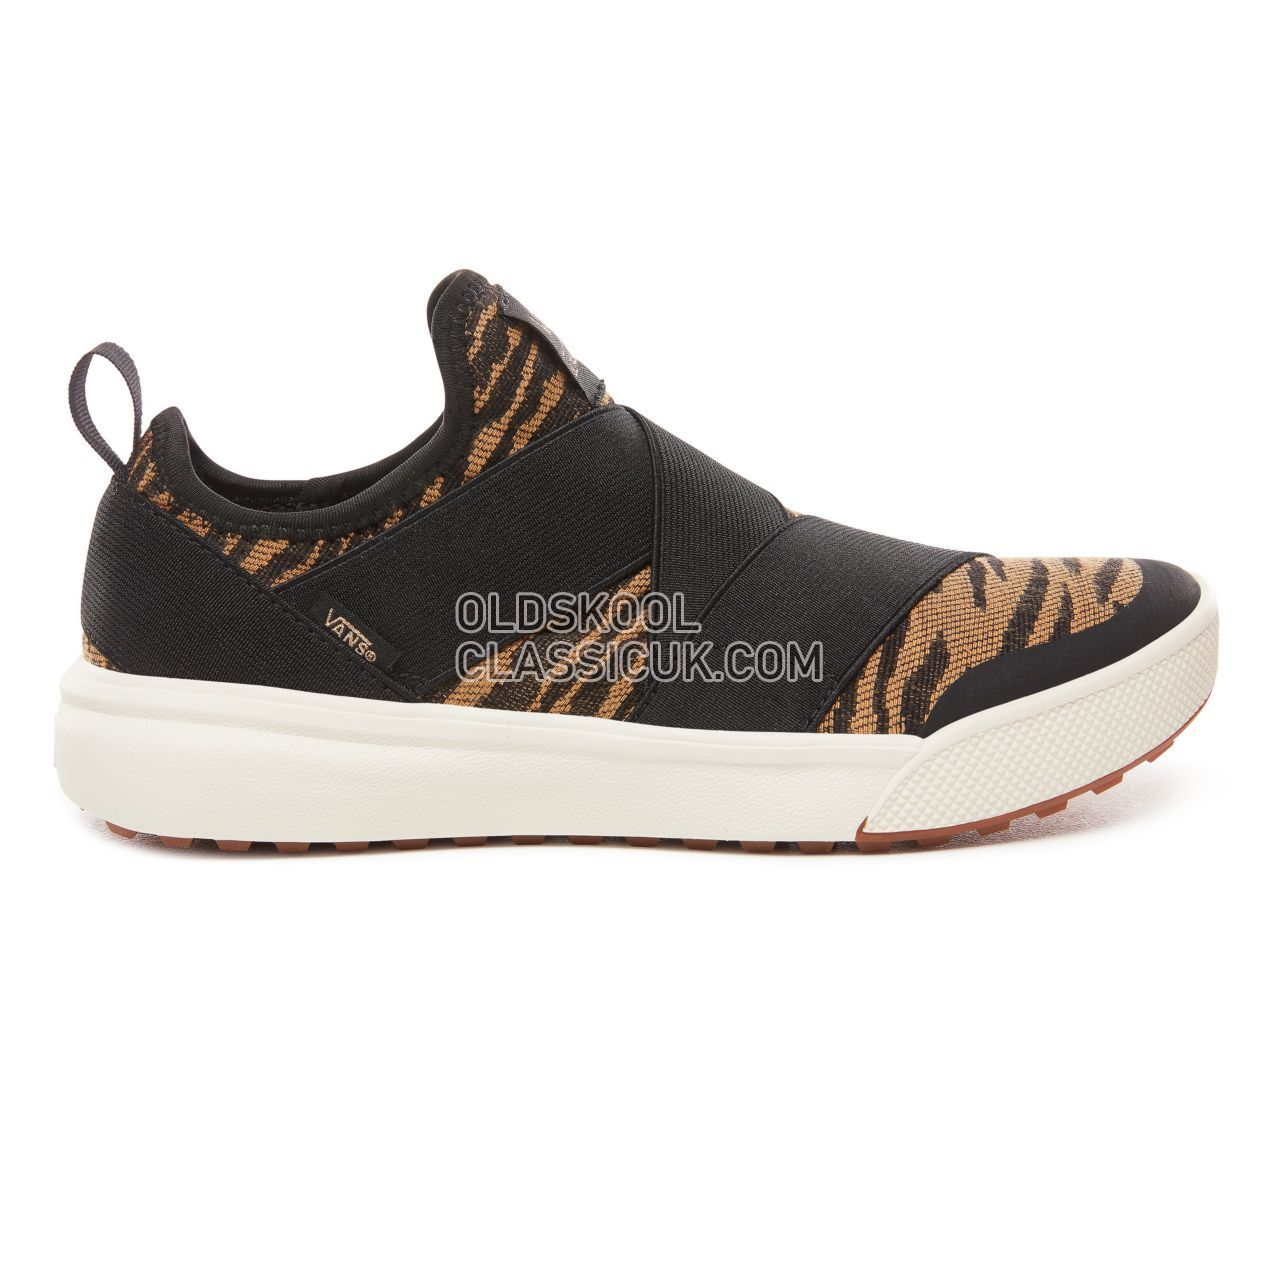 Vans Woven Tiger Ultrarange Gore Sneakers Womens (Woven Tiger) Black VN0A3MVRUR3 Shoes